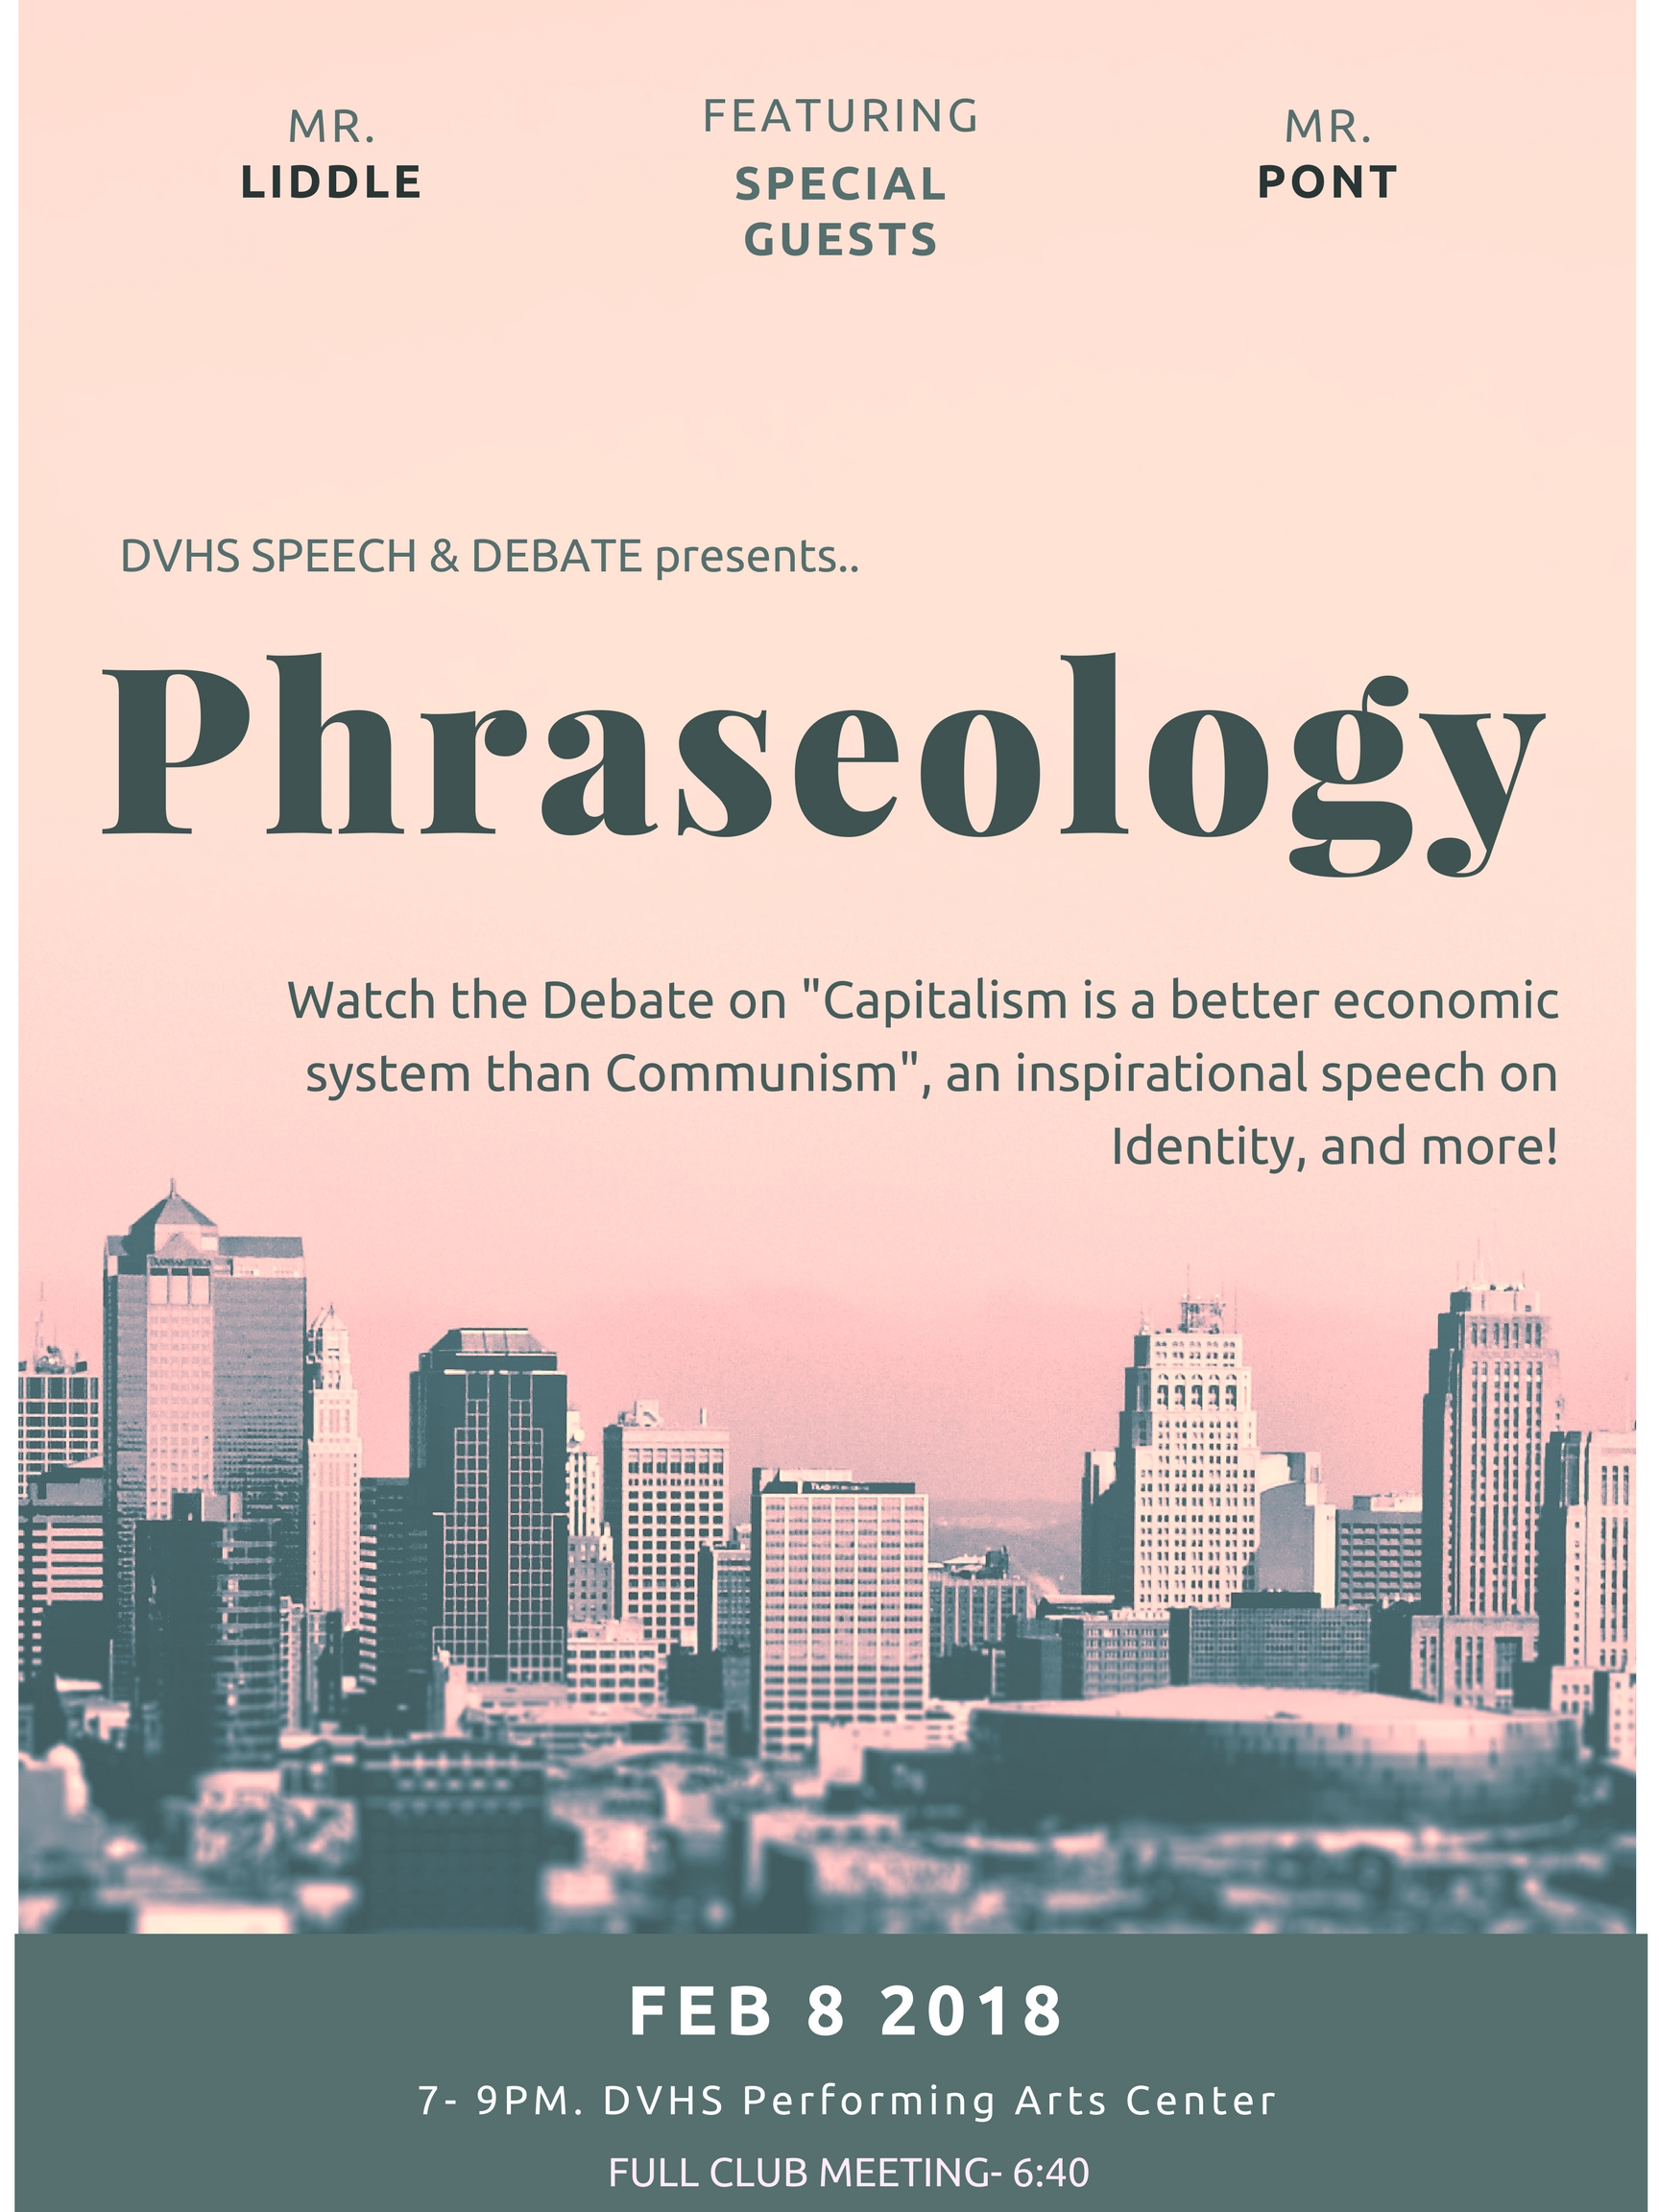 phraseology 2.jpg